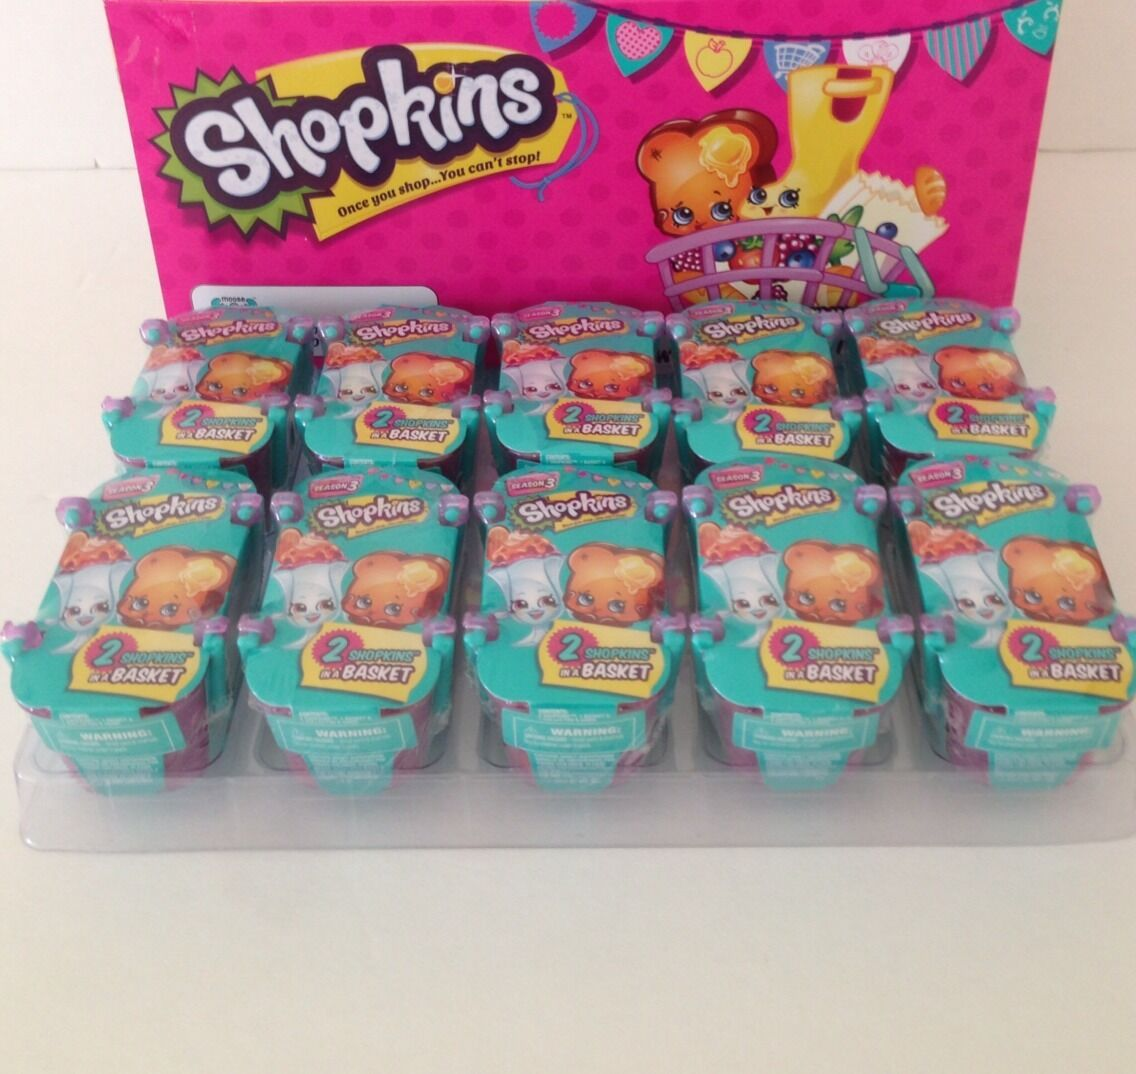 Shopkins SEASON 3 Sealed 10 Blind Baskets Find Limited Edition Ultra Rare